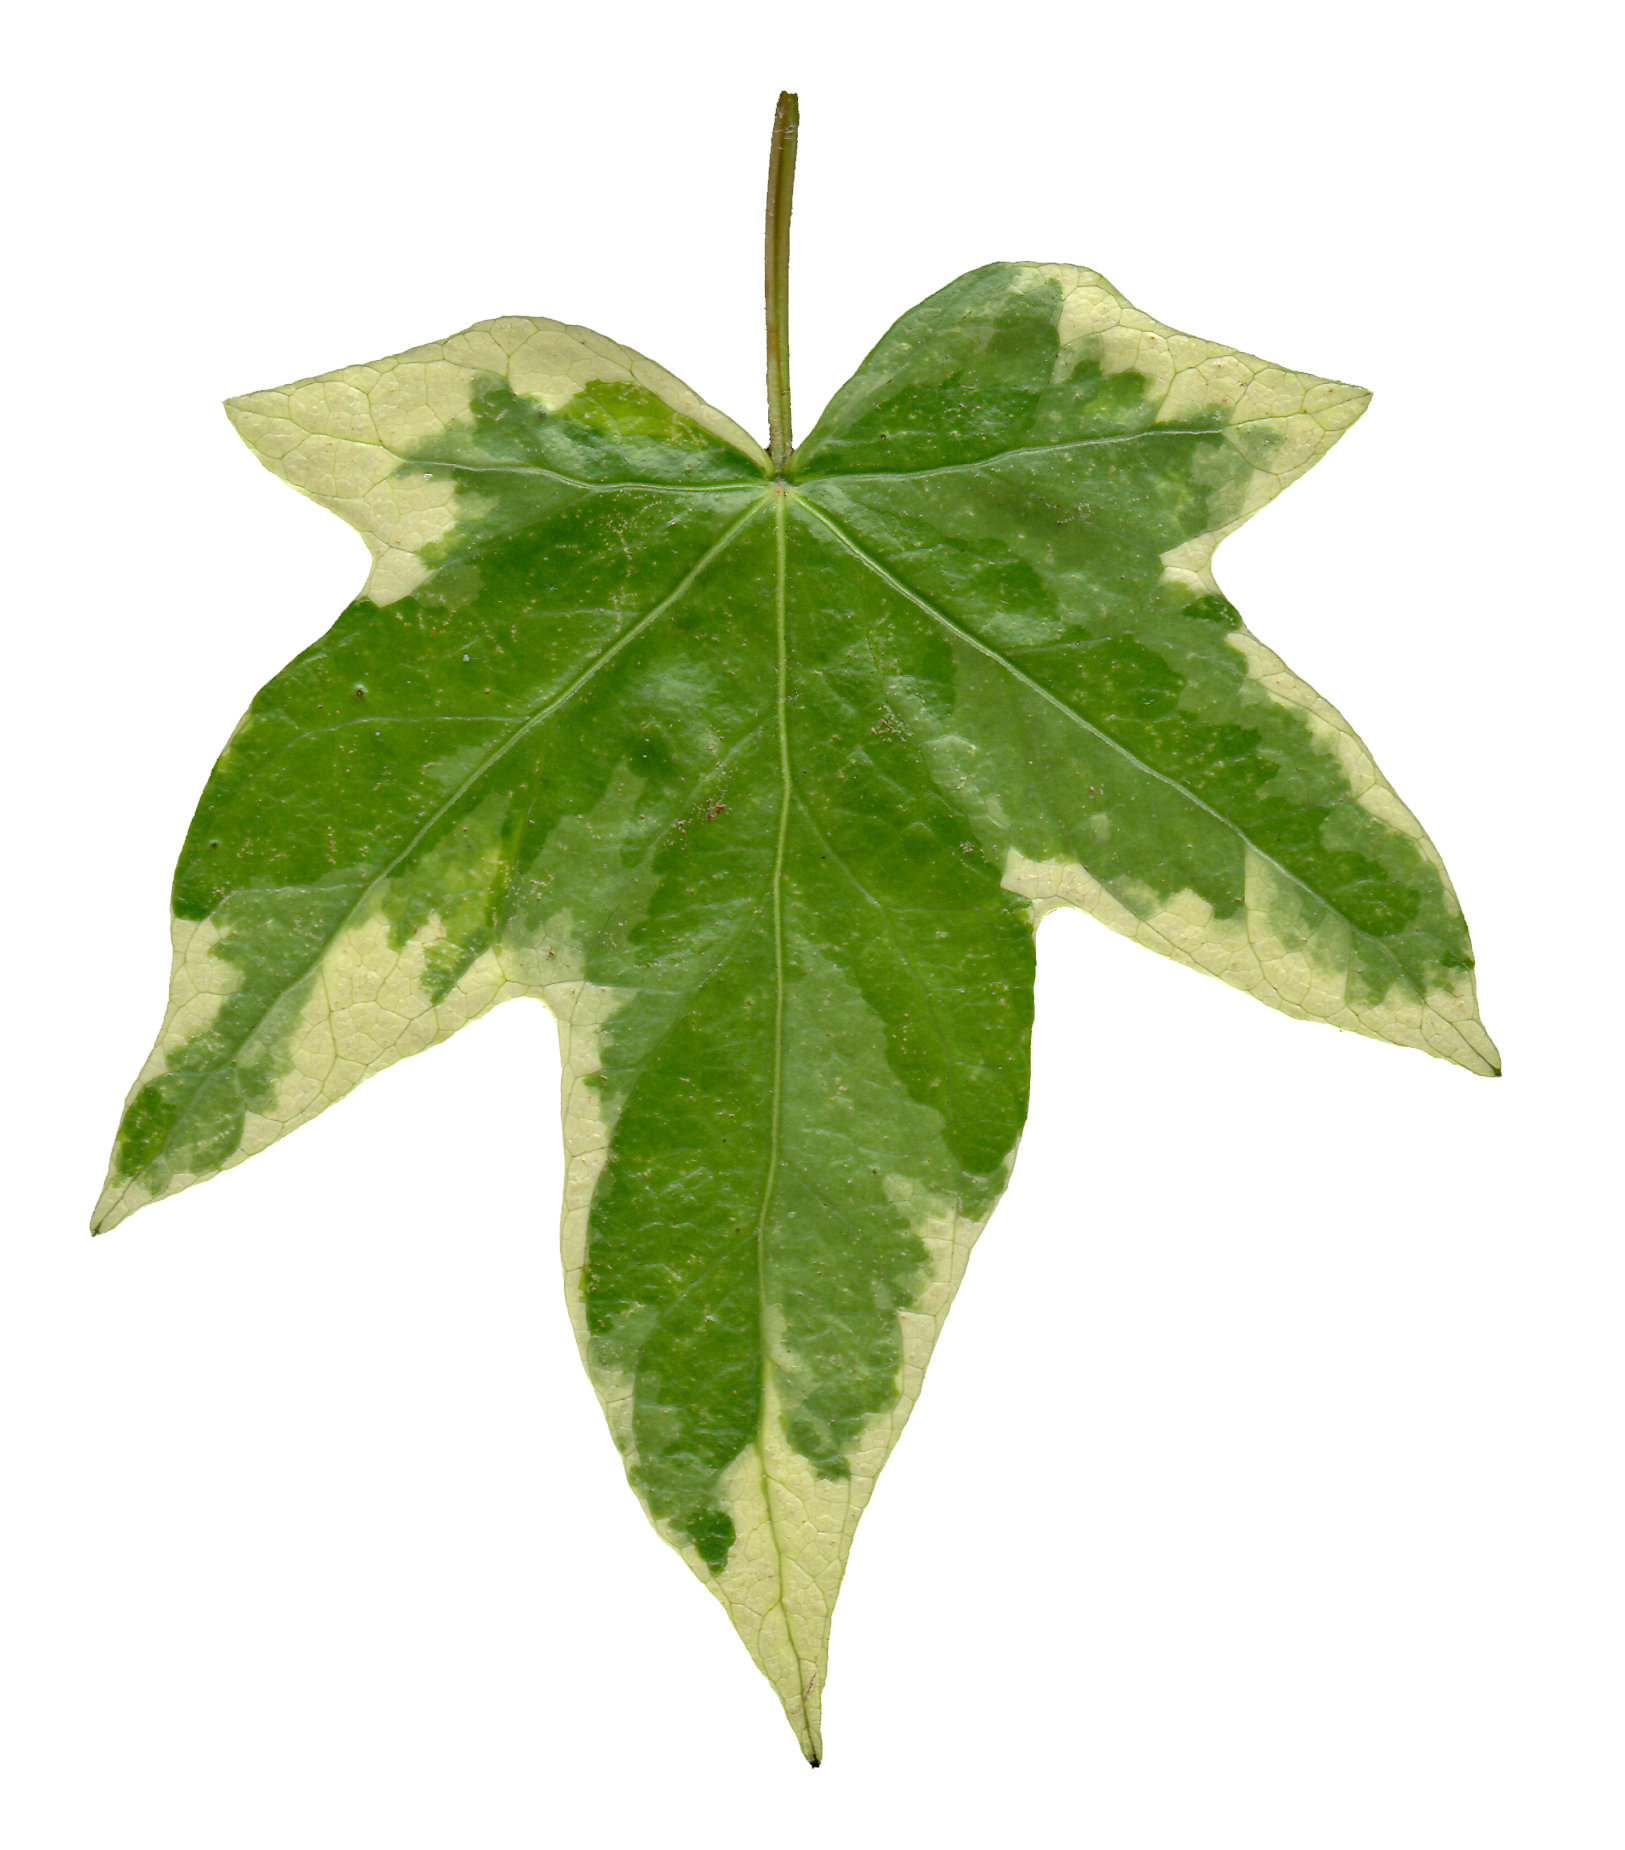 Ivy Leaf Front Texture By Hhh316 Png 1625 1850 Autumn Leaves Photography Ivy Leaf Leaves